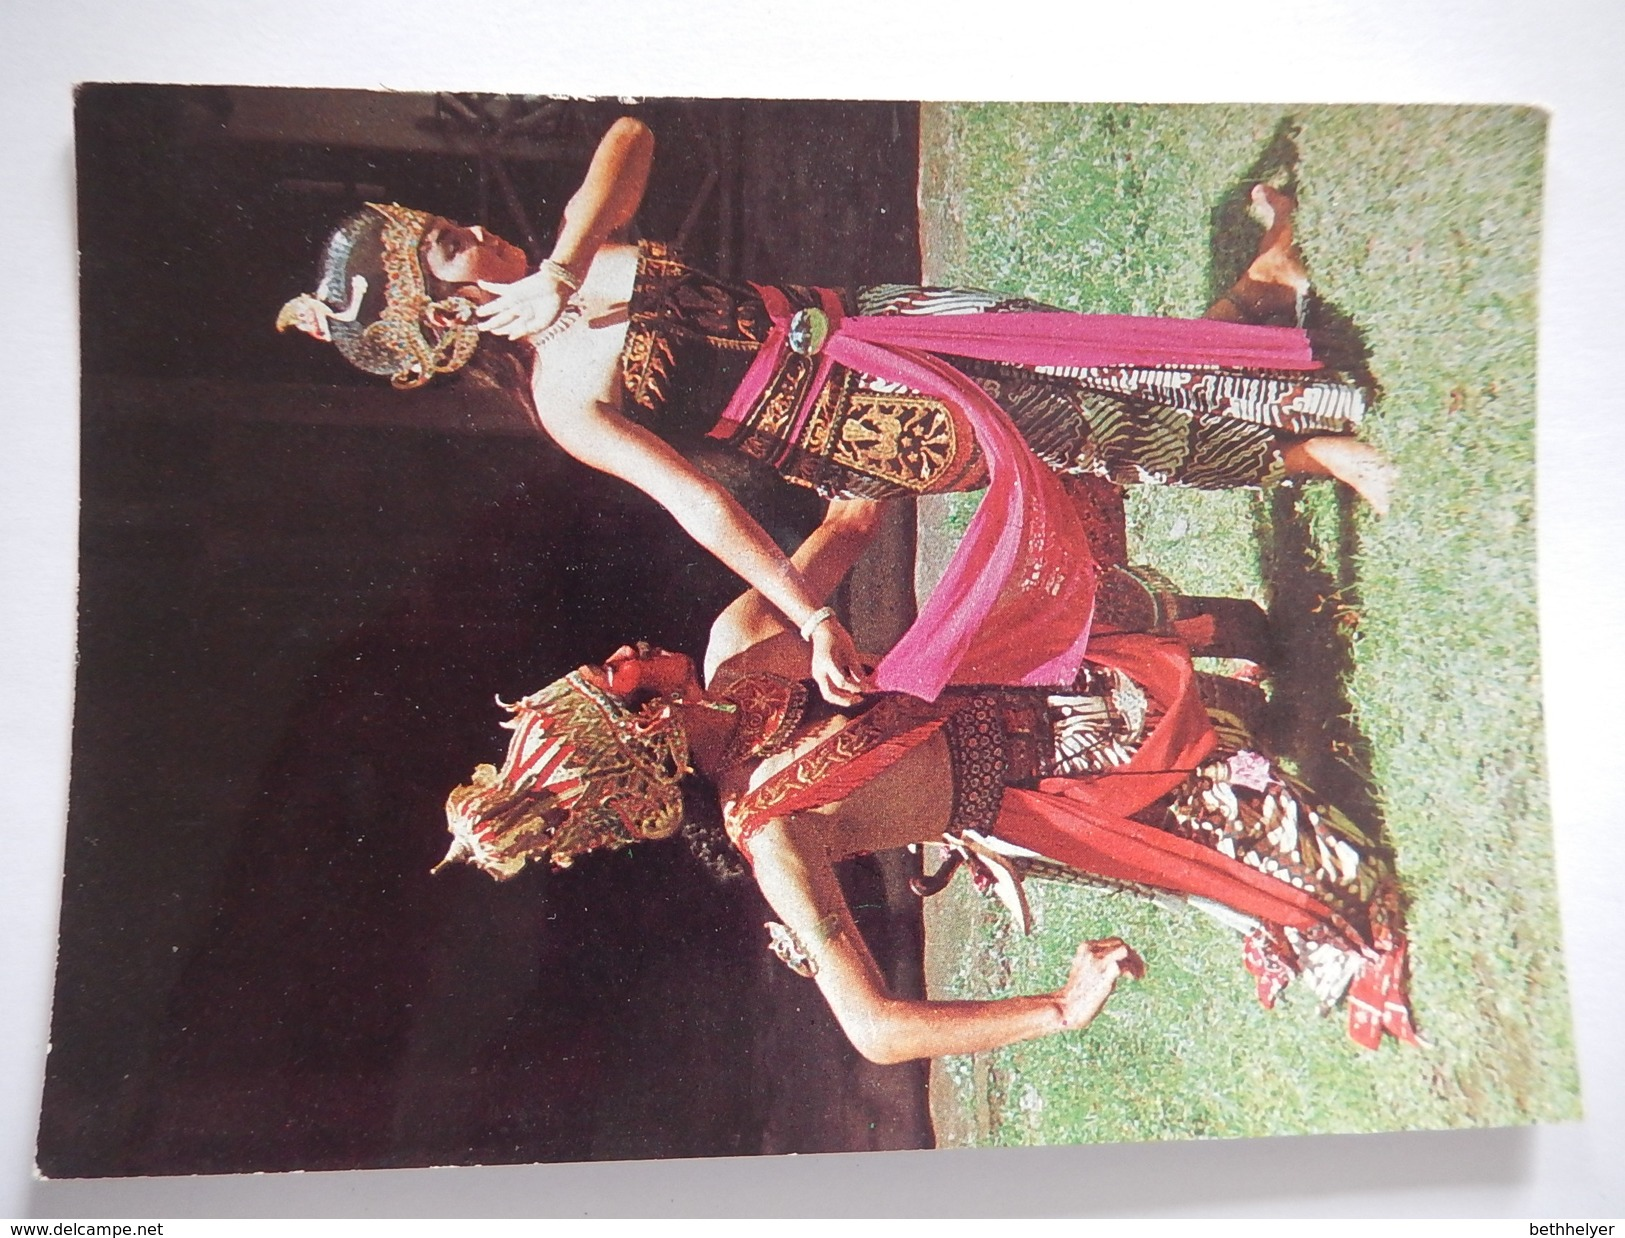 CPSM - RAHWANA AND SHINTA - FROM THE RAMAYANA STORY - COSTUME - R3928 - Cartes Postales